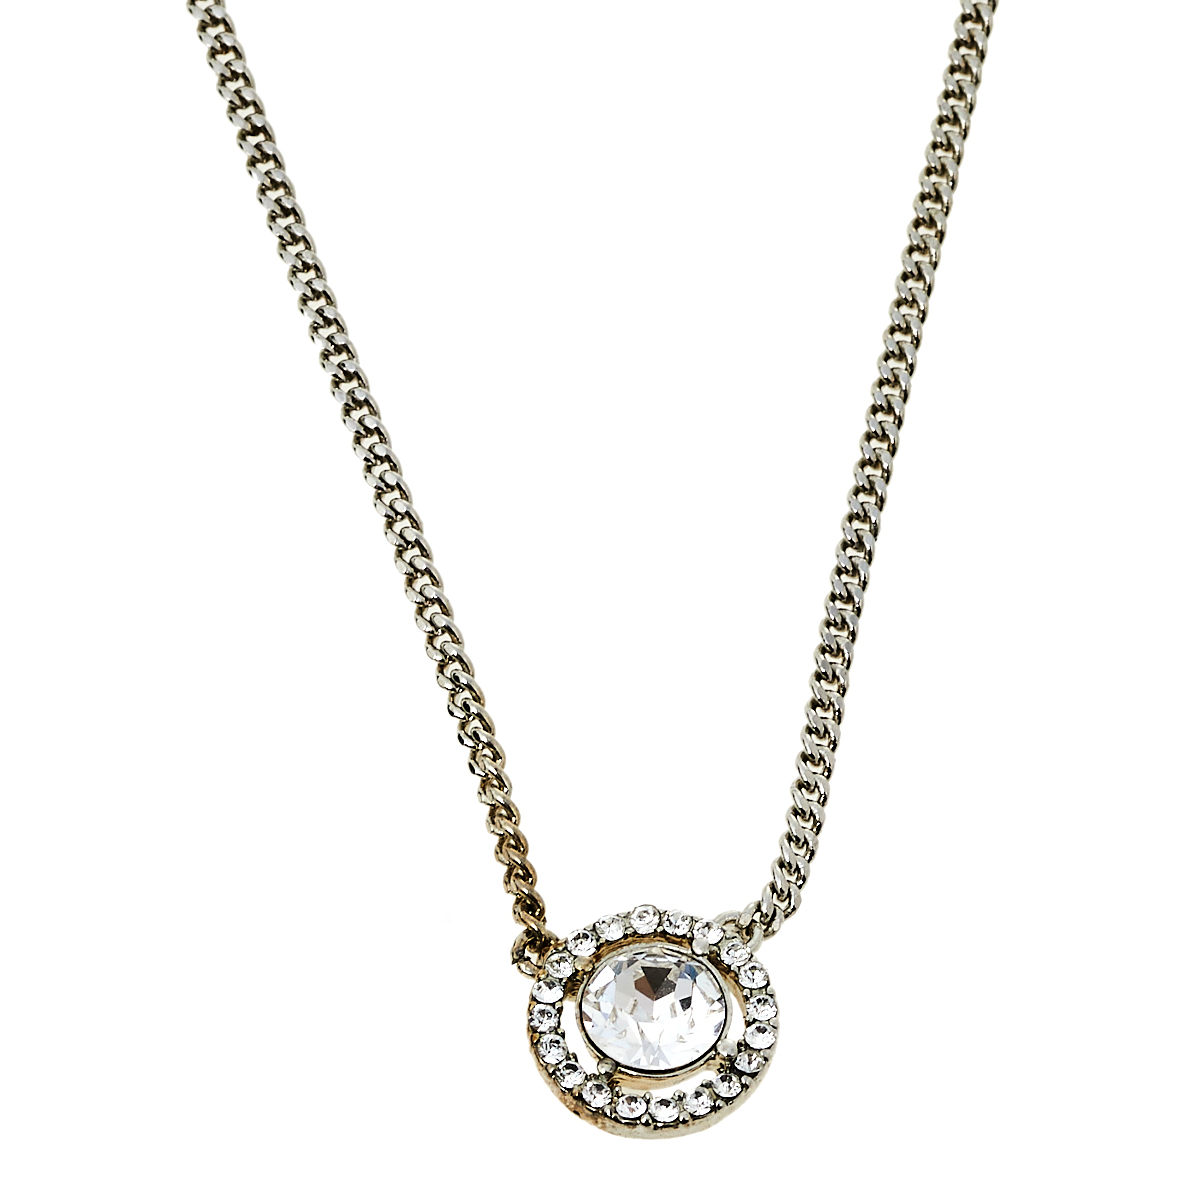 Pre-owned Givenchy Silver Tone Crystal Pendant Chain Necklace